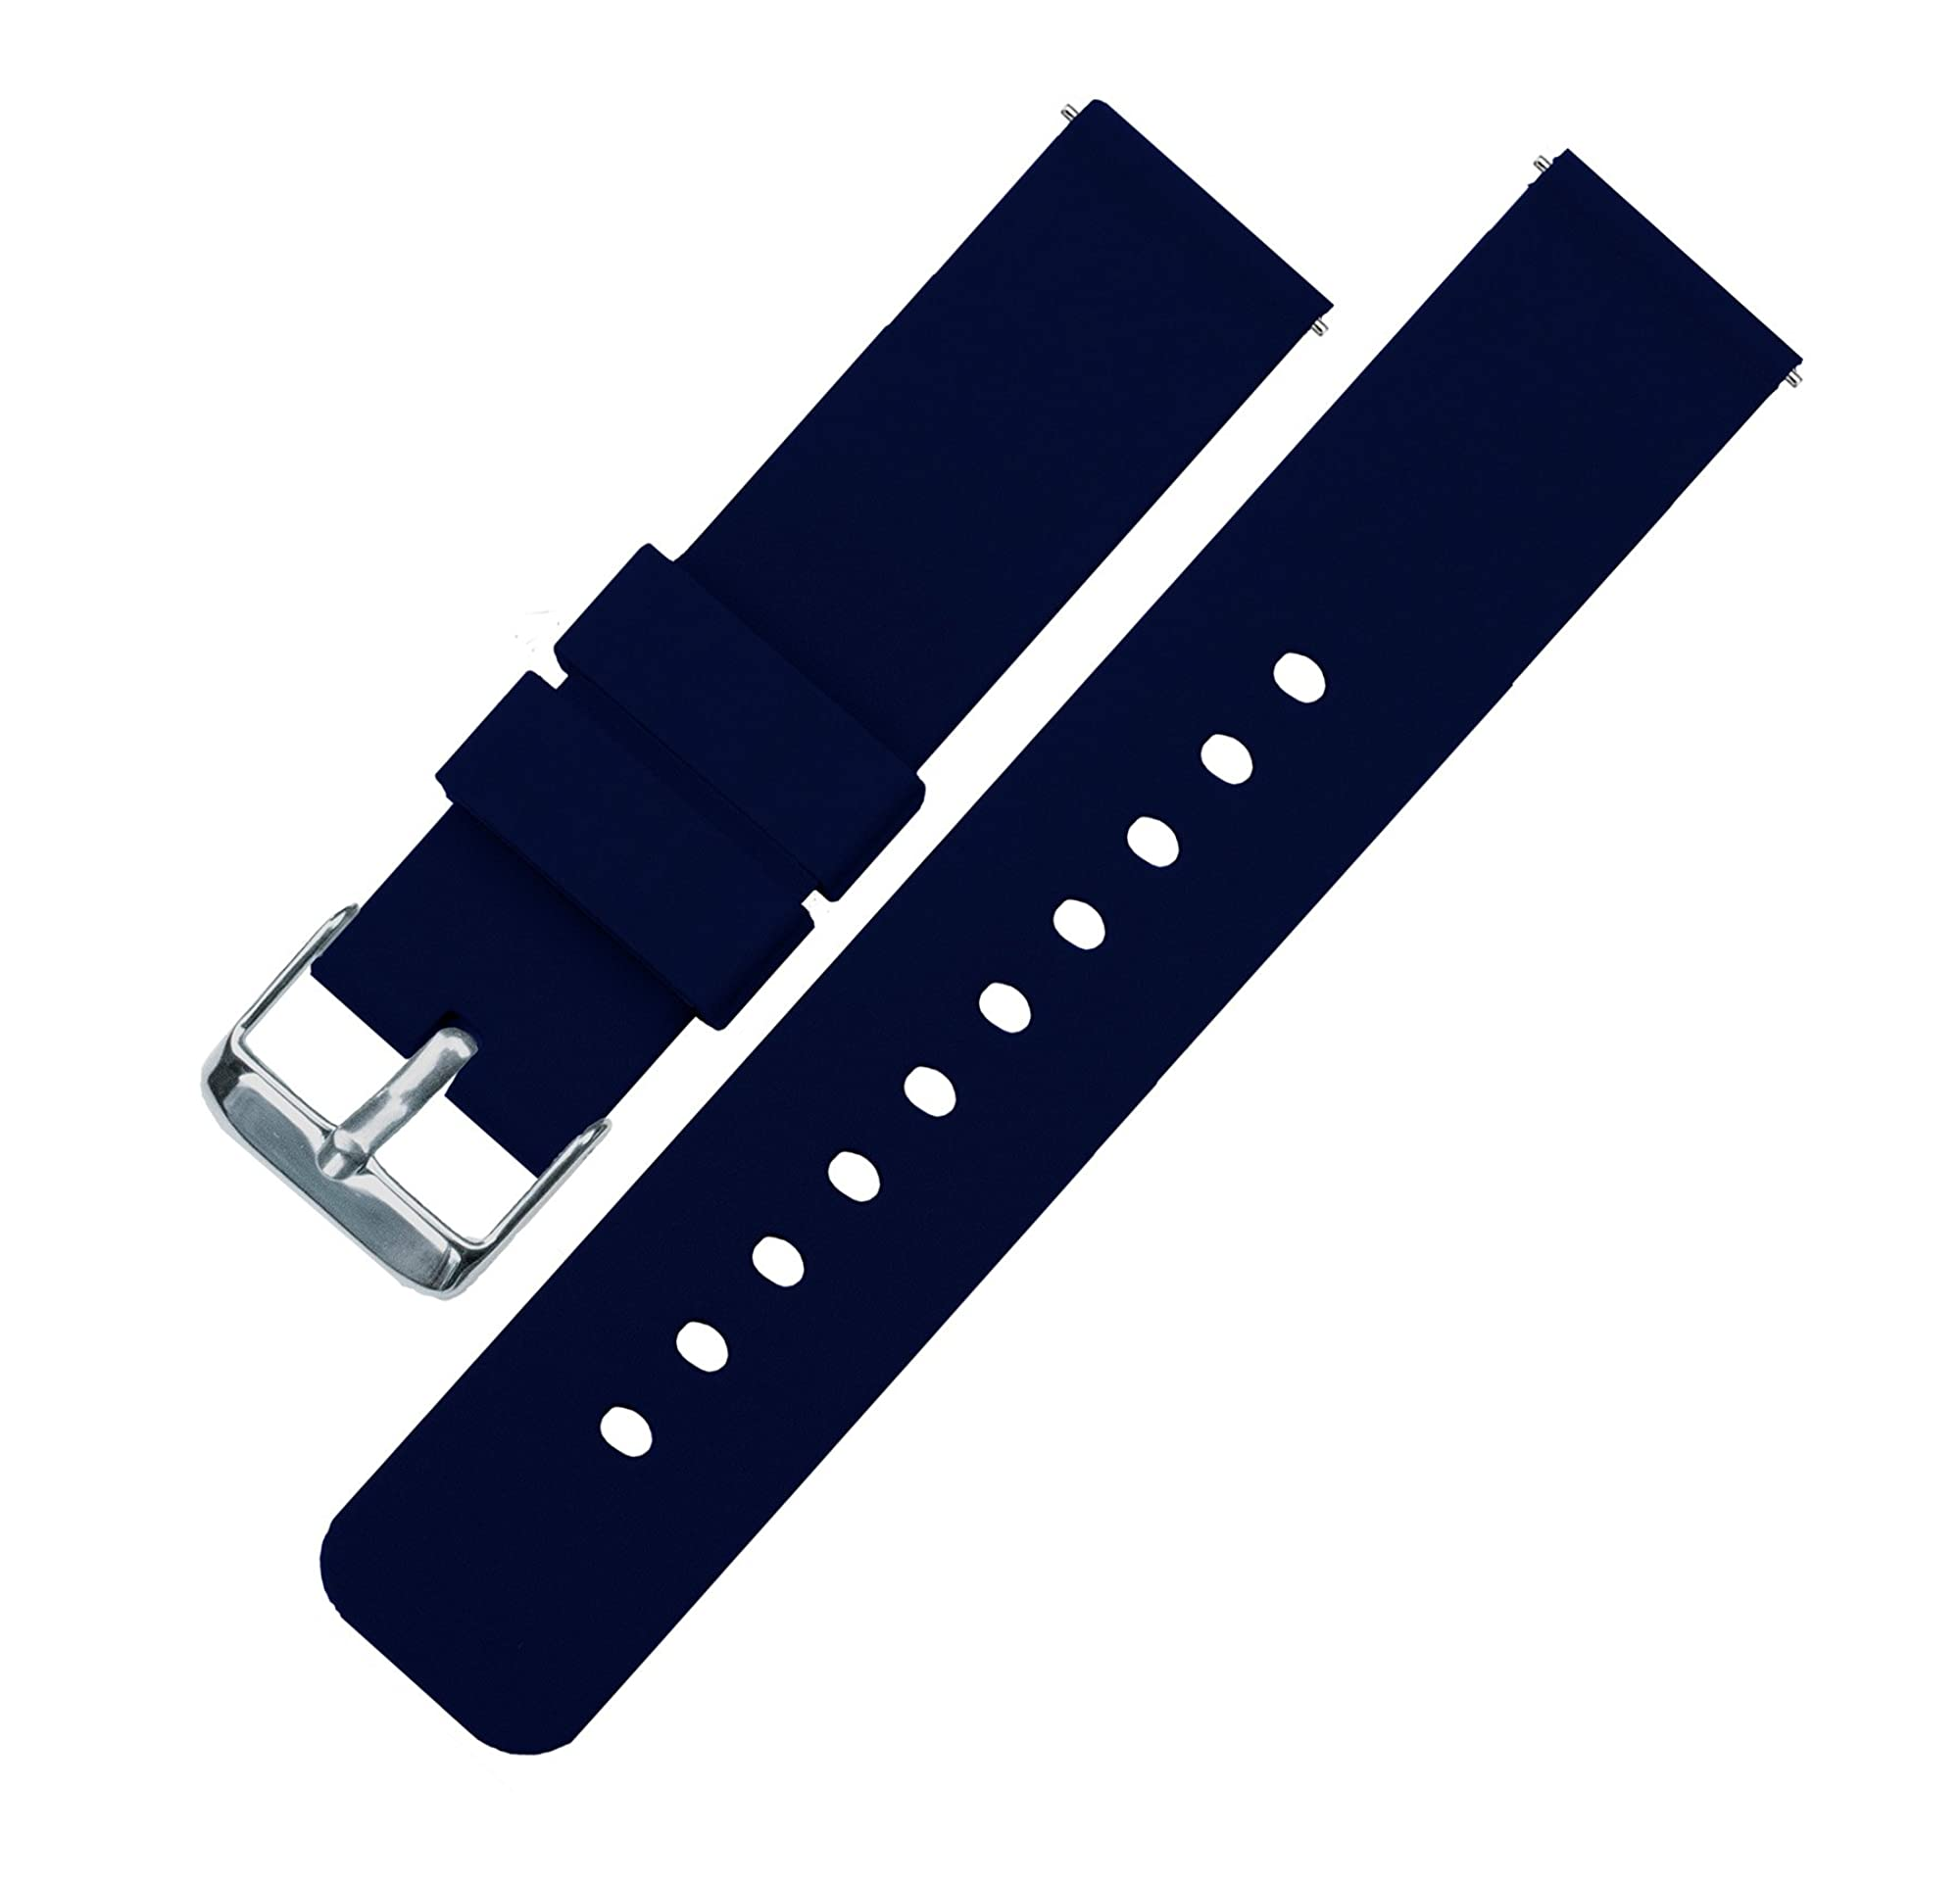 Silicone Watch Bands For Both Men And Women